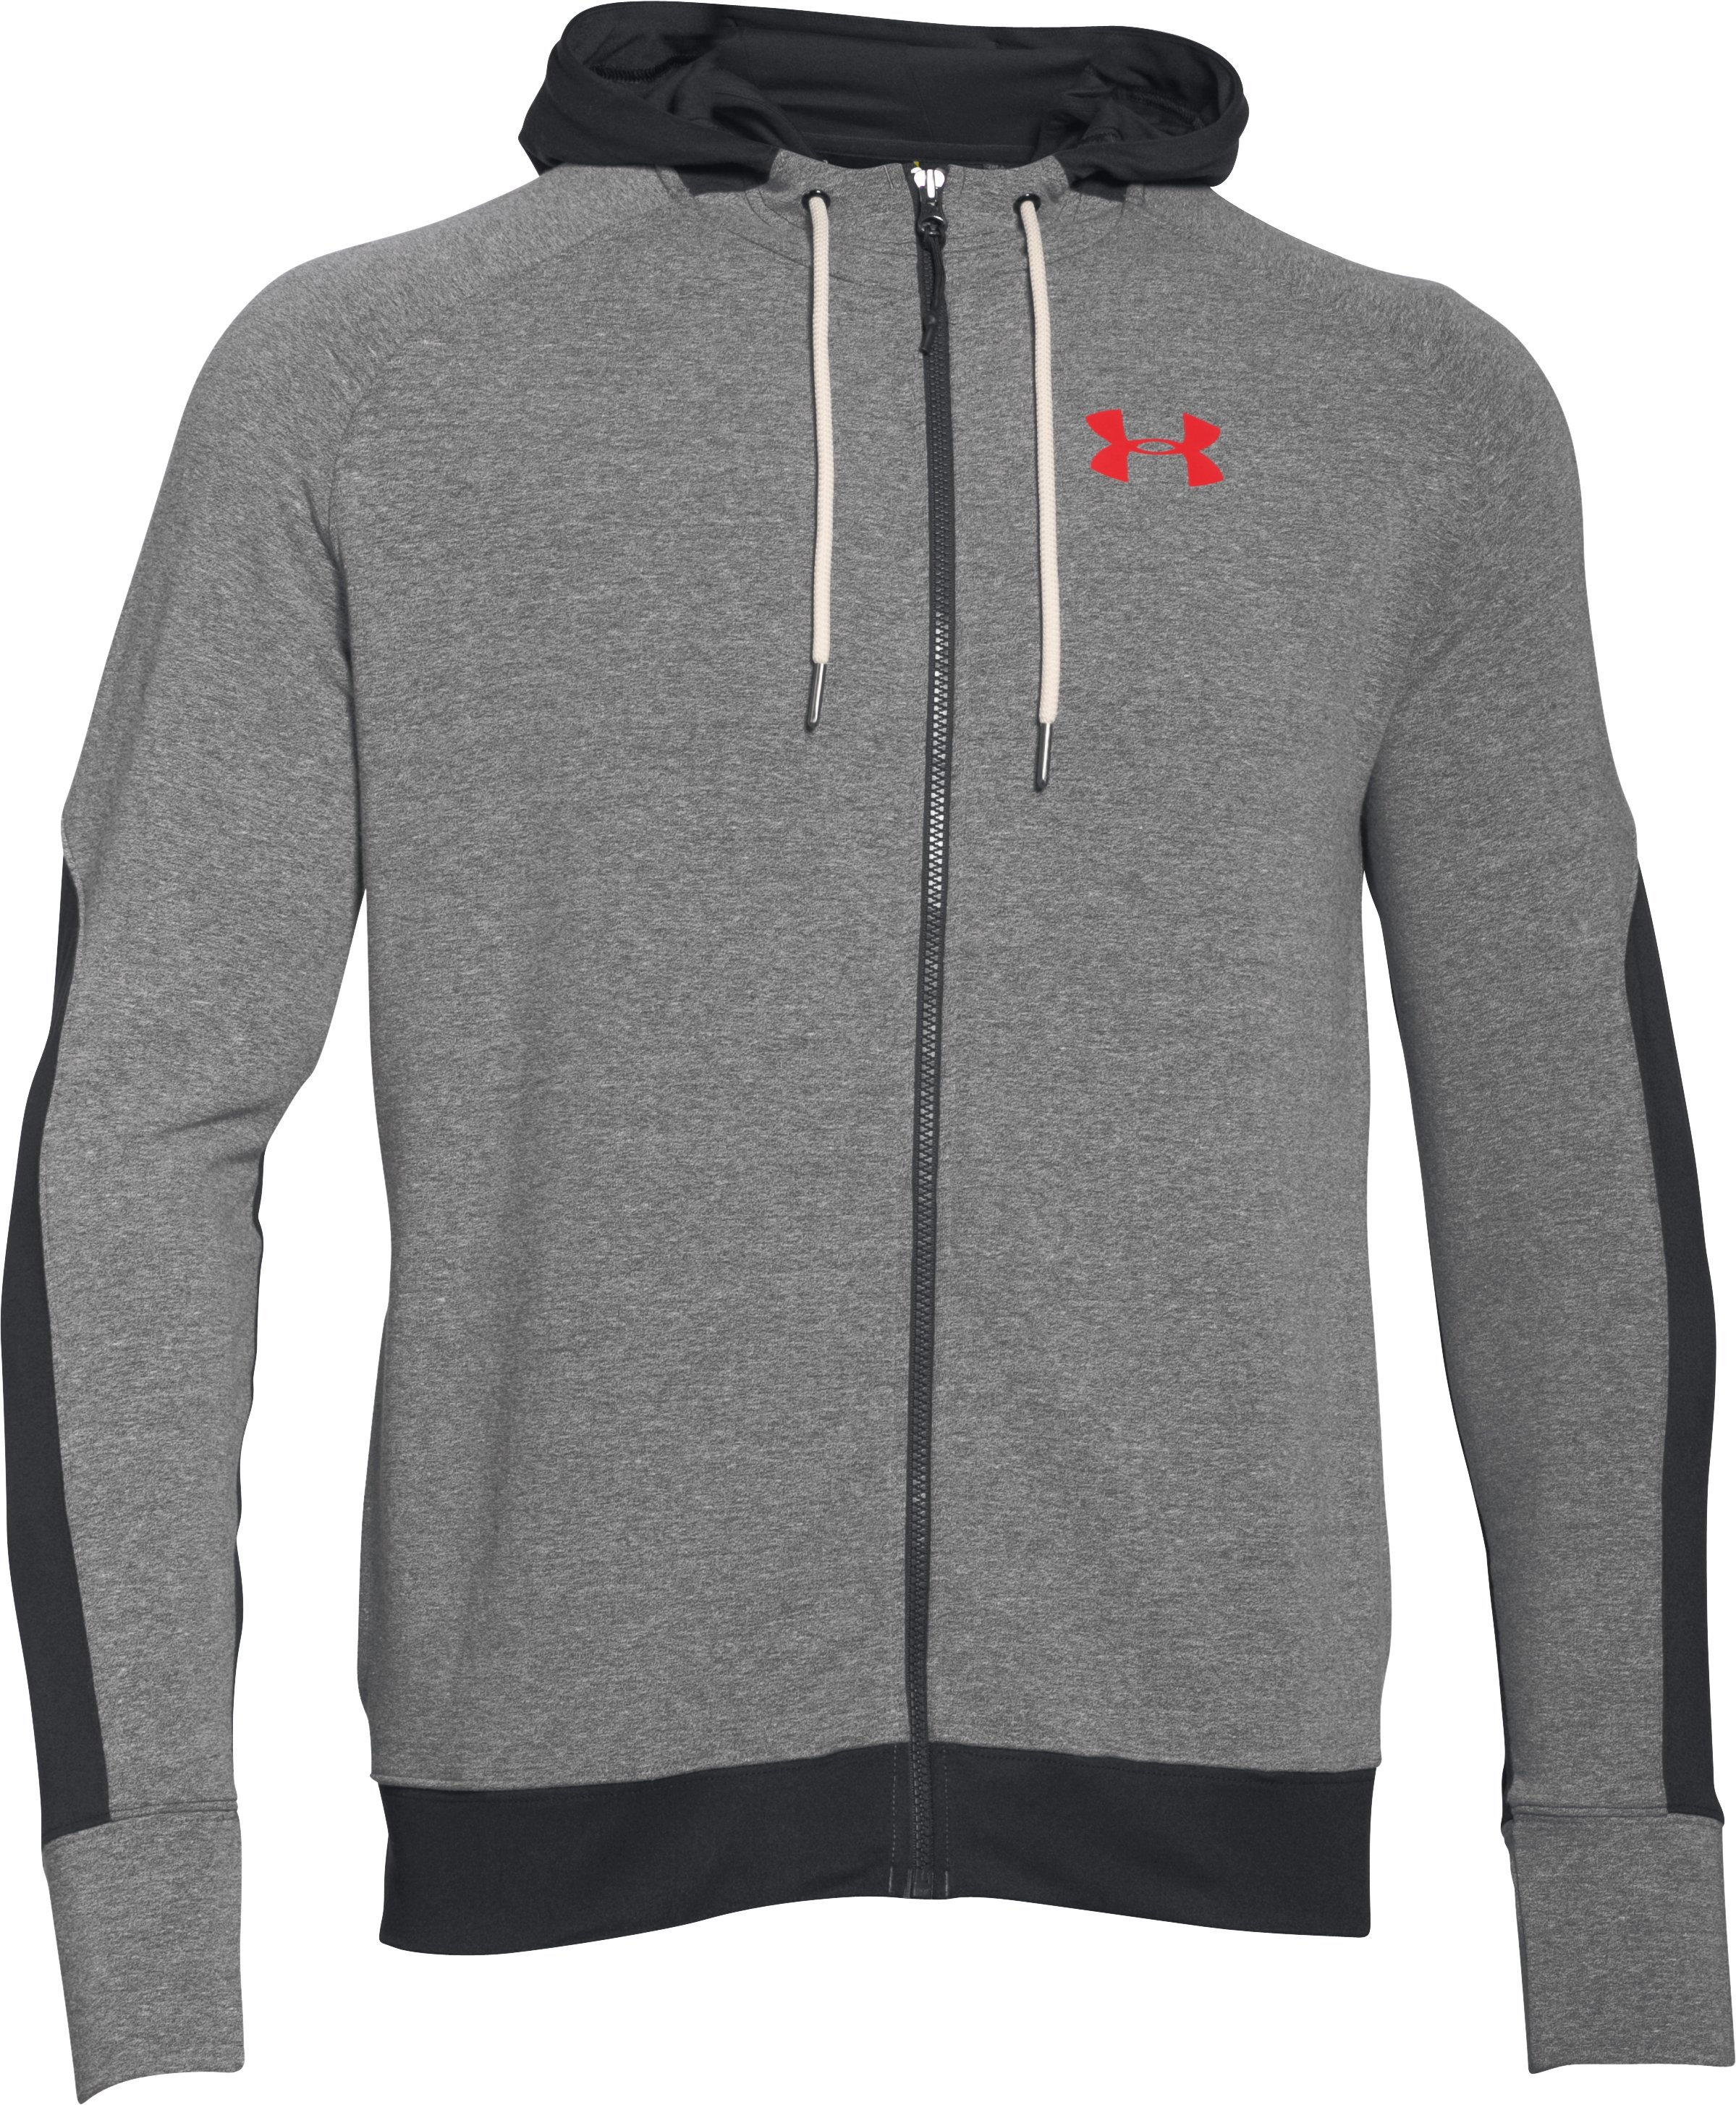 Men's UA x Muhammad Ali Terry Hoodie, GREYHOUND HEATHER